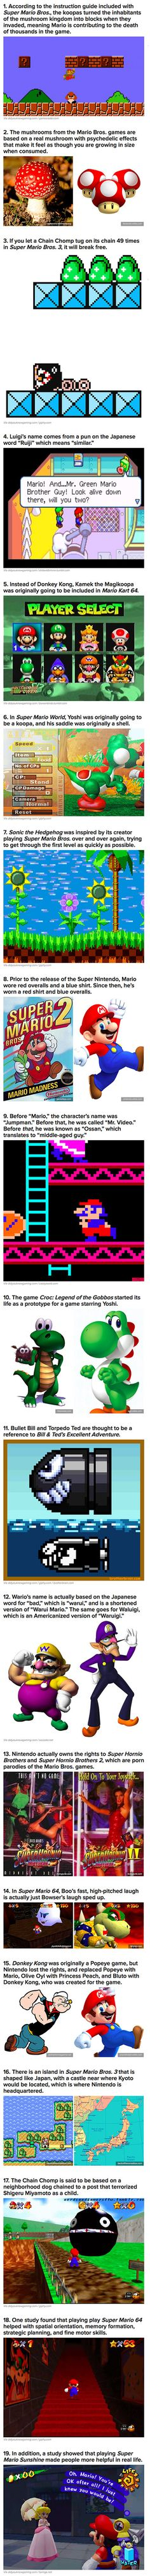 19 Cool and Interesting Facts About Super Mario Bros - TechEBlog